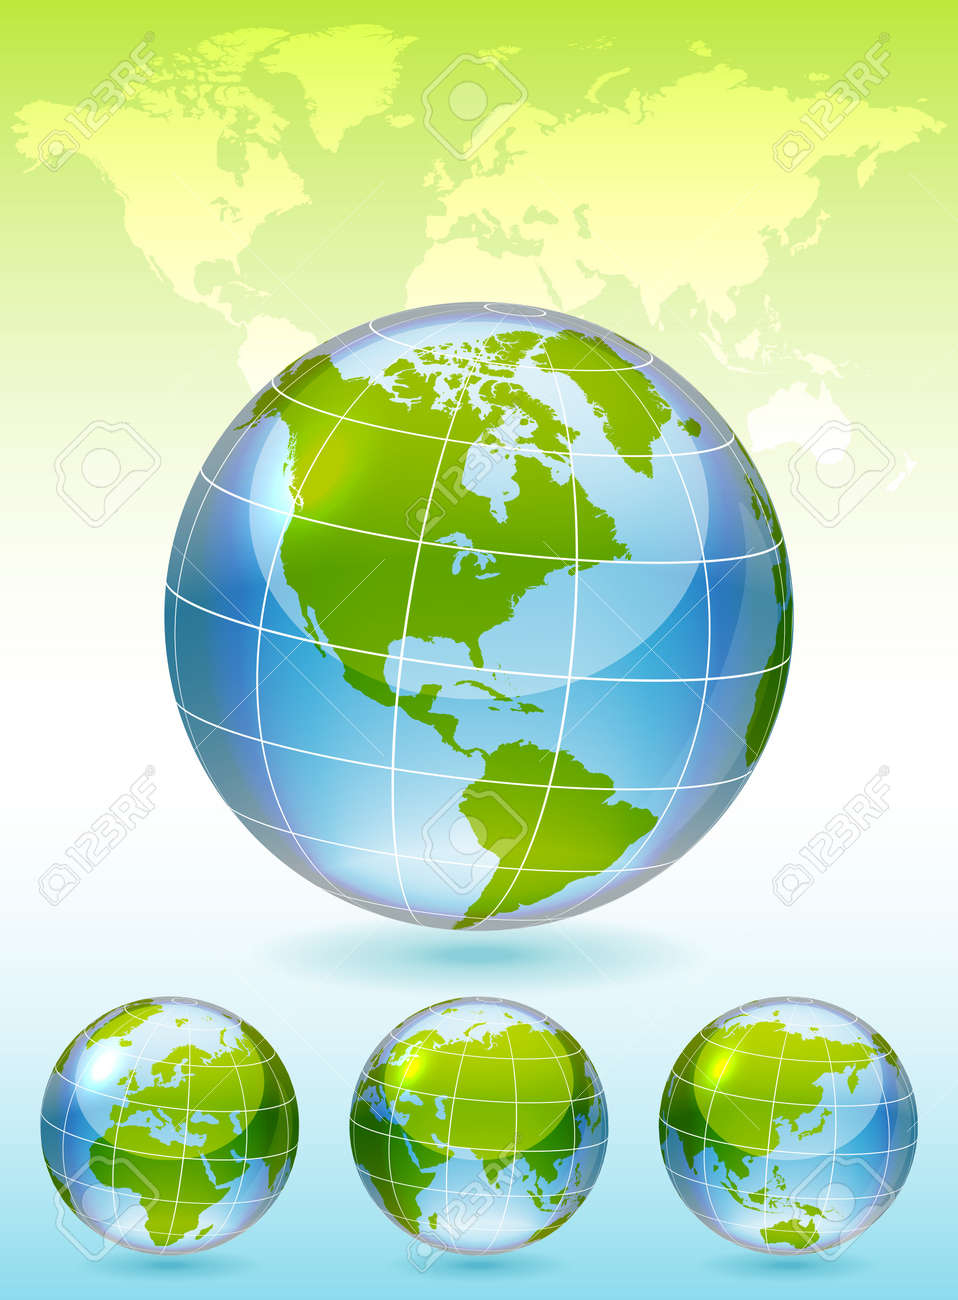 Different views of glass globe, map included Stock Vector - 12756959